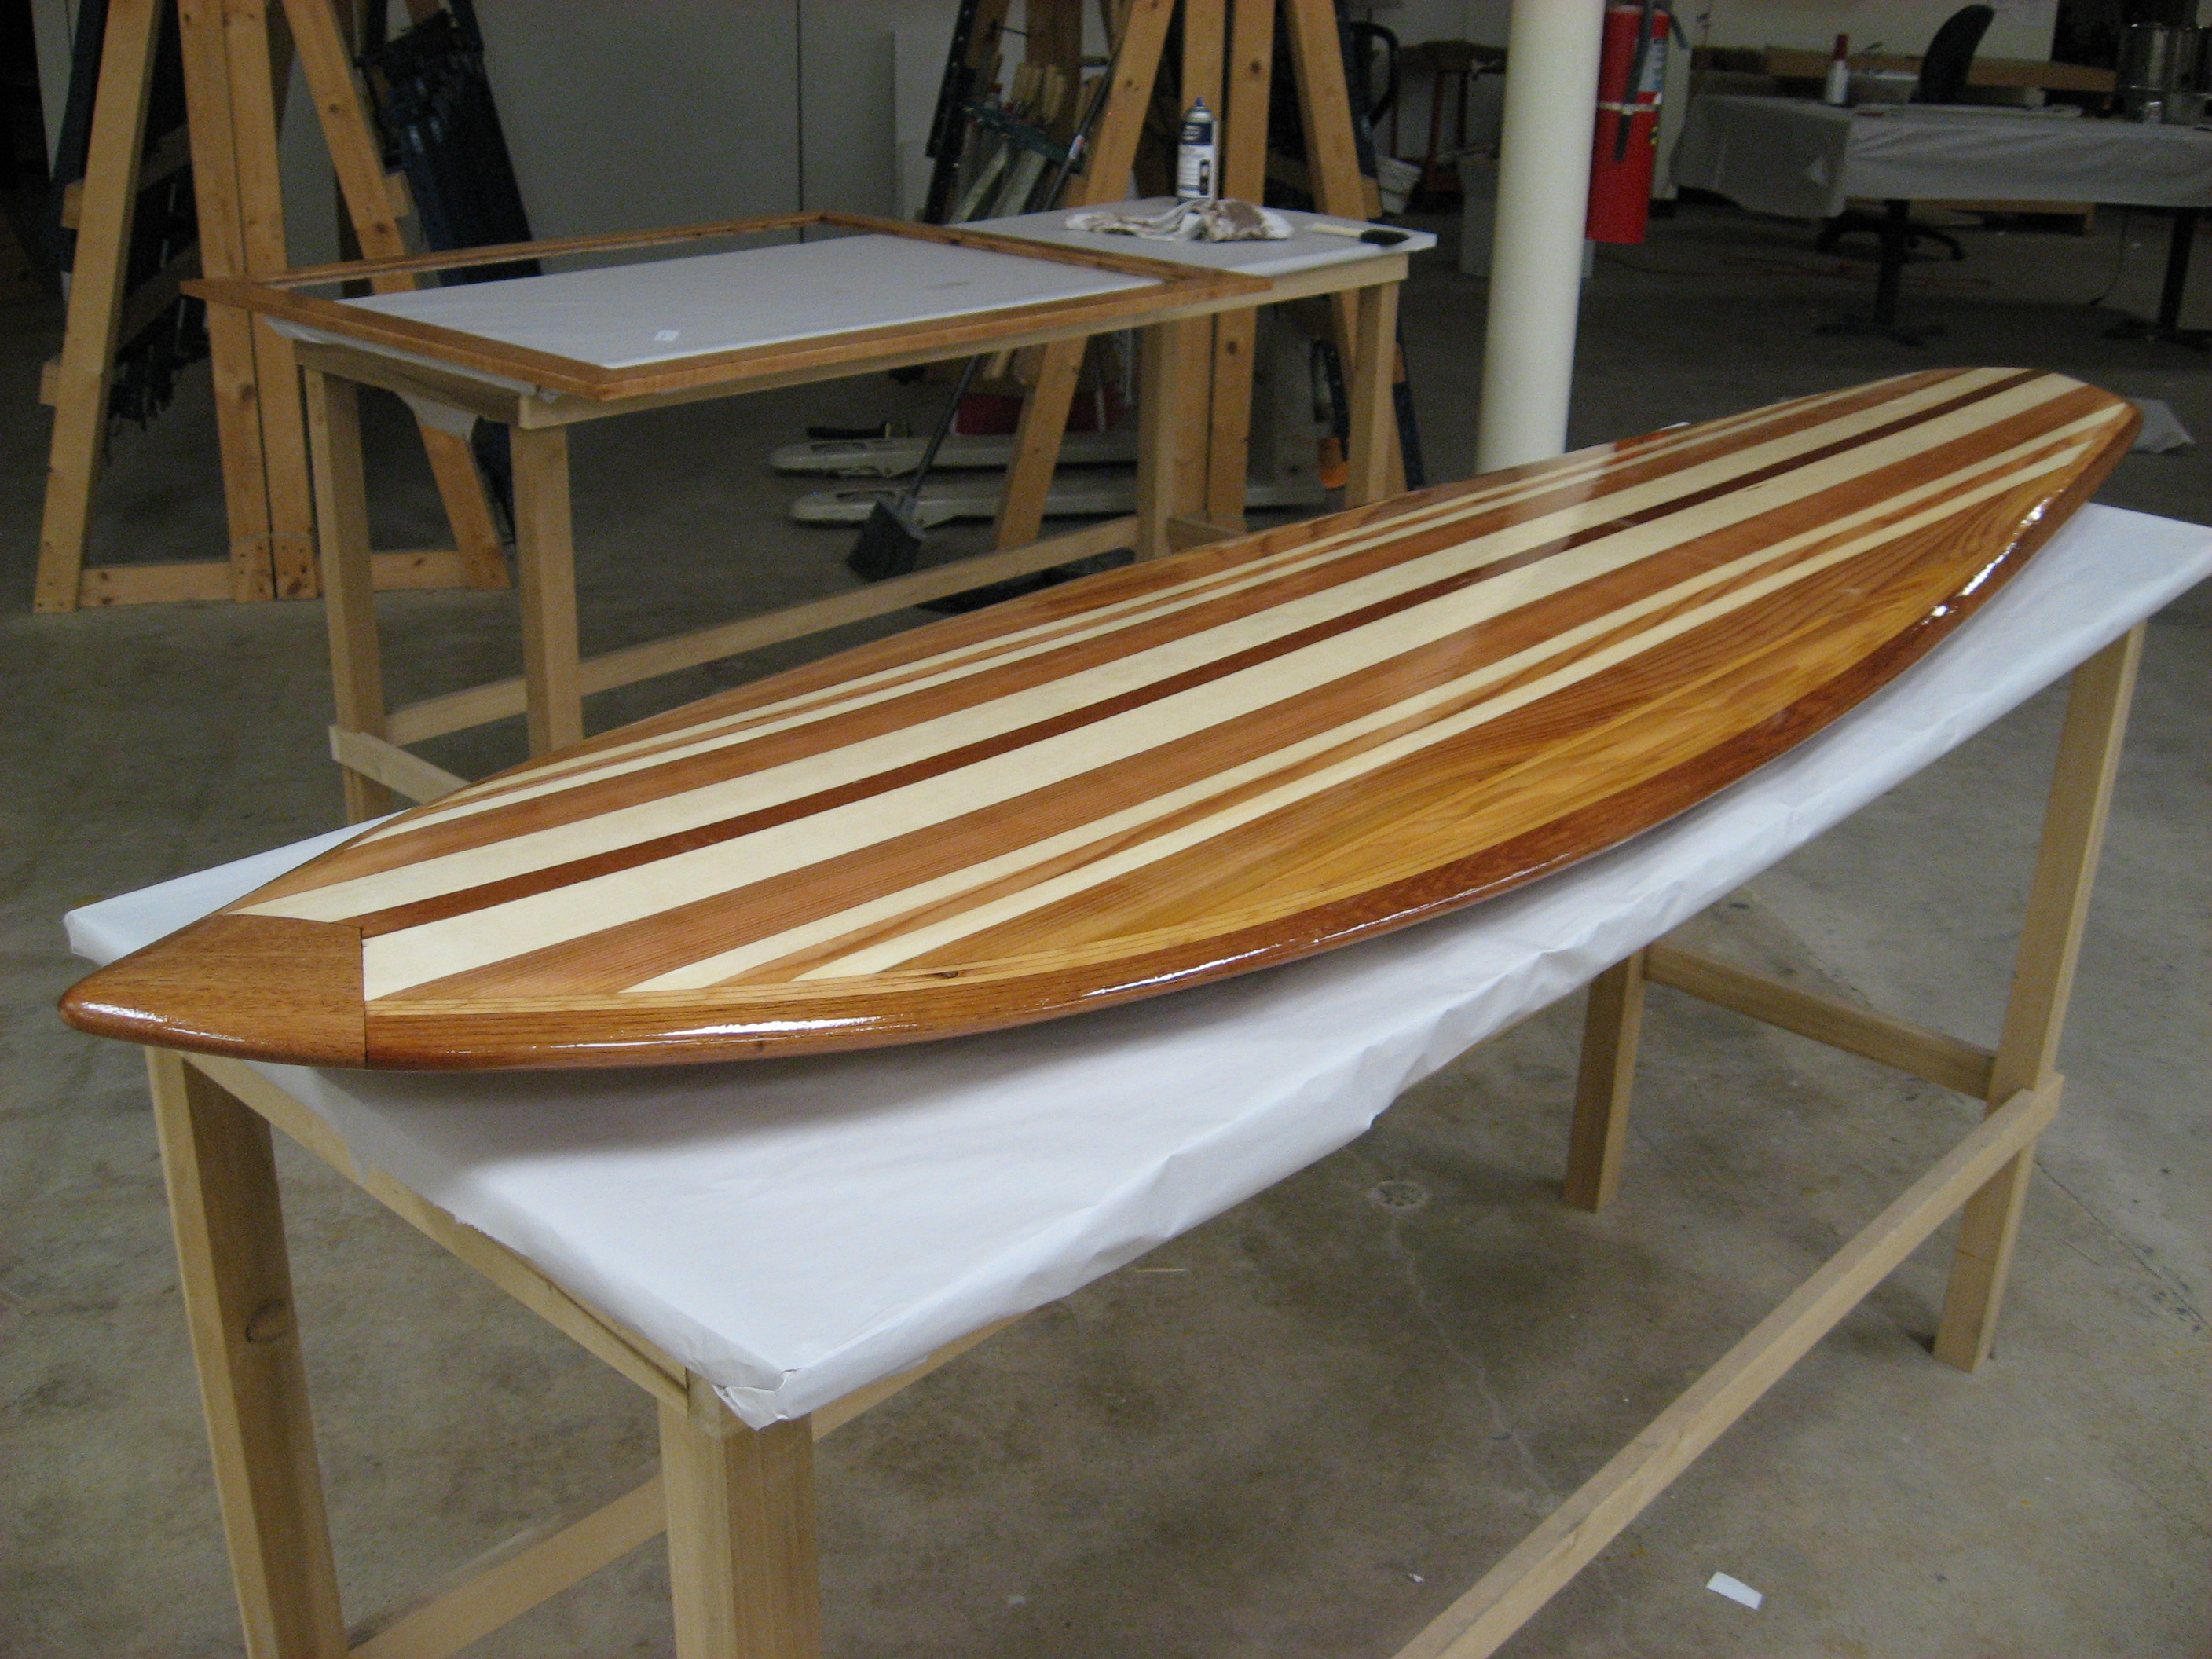 ... Surfboard Plans PDF Download wood playhouse kit | unnatural73gkc